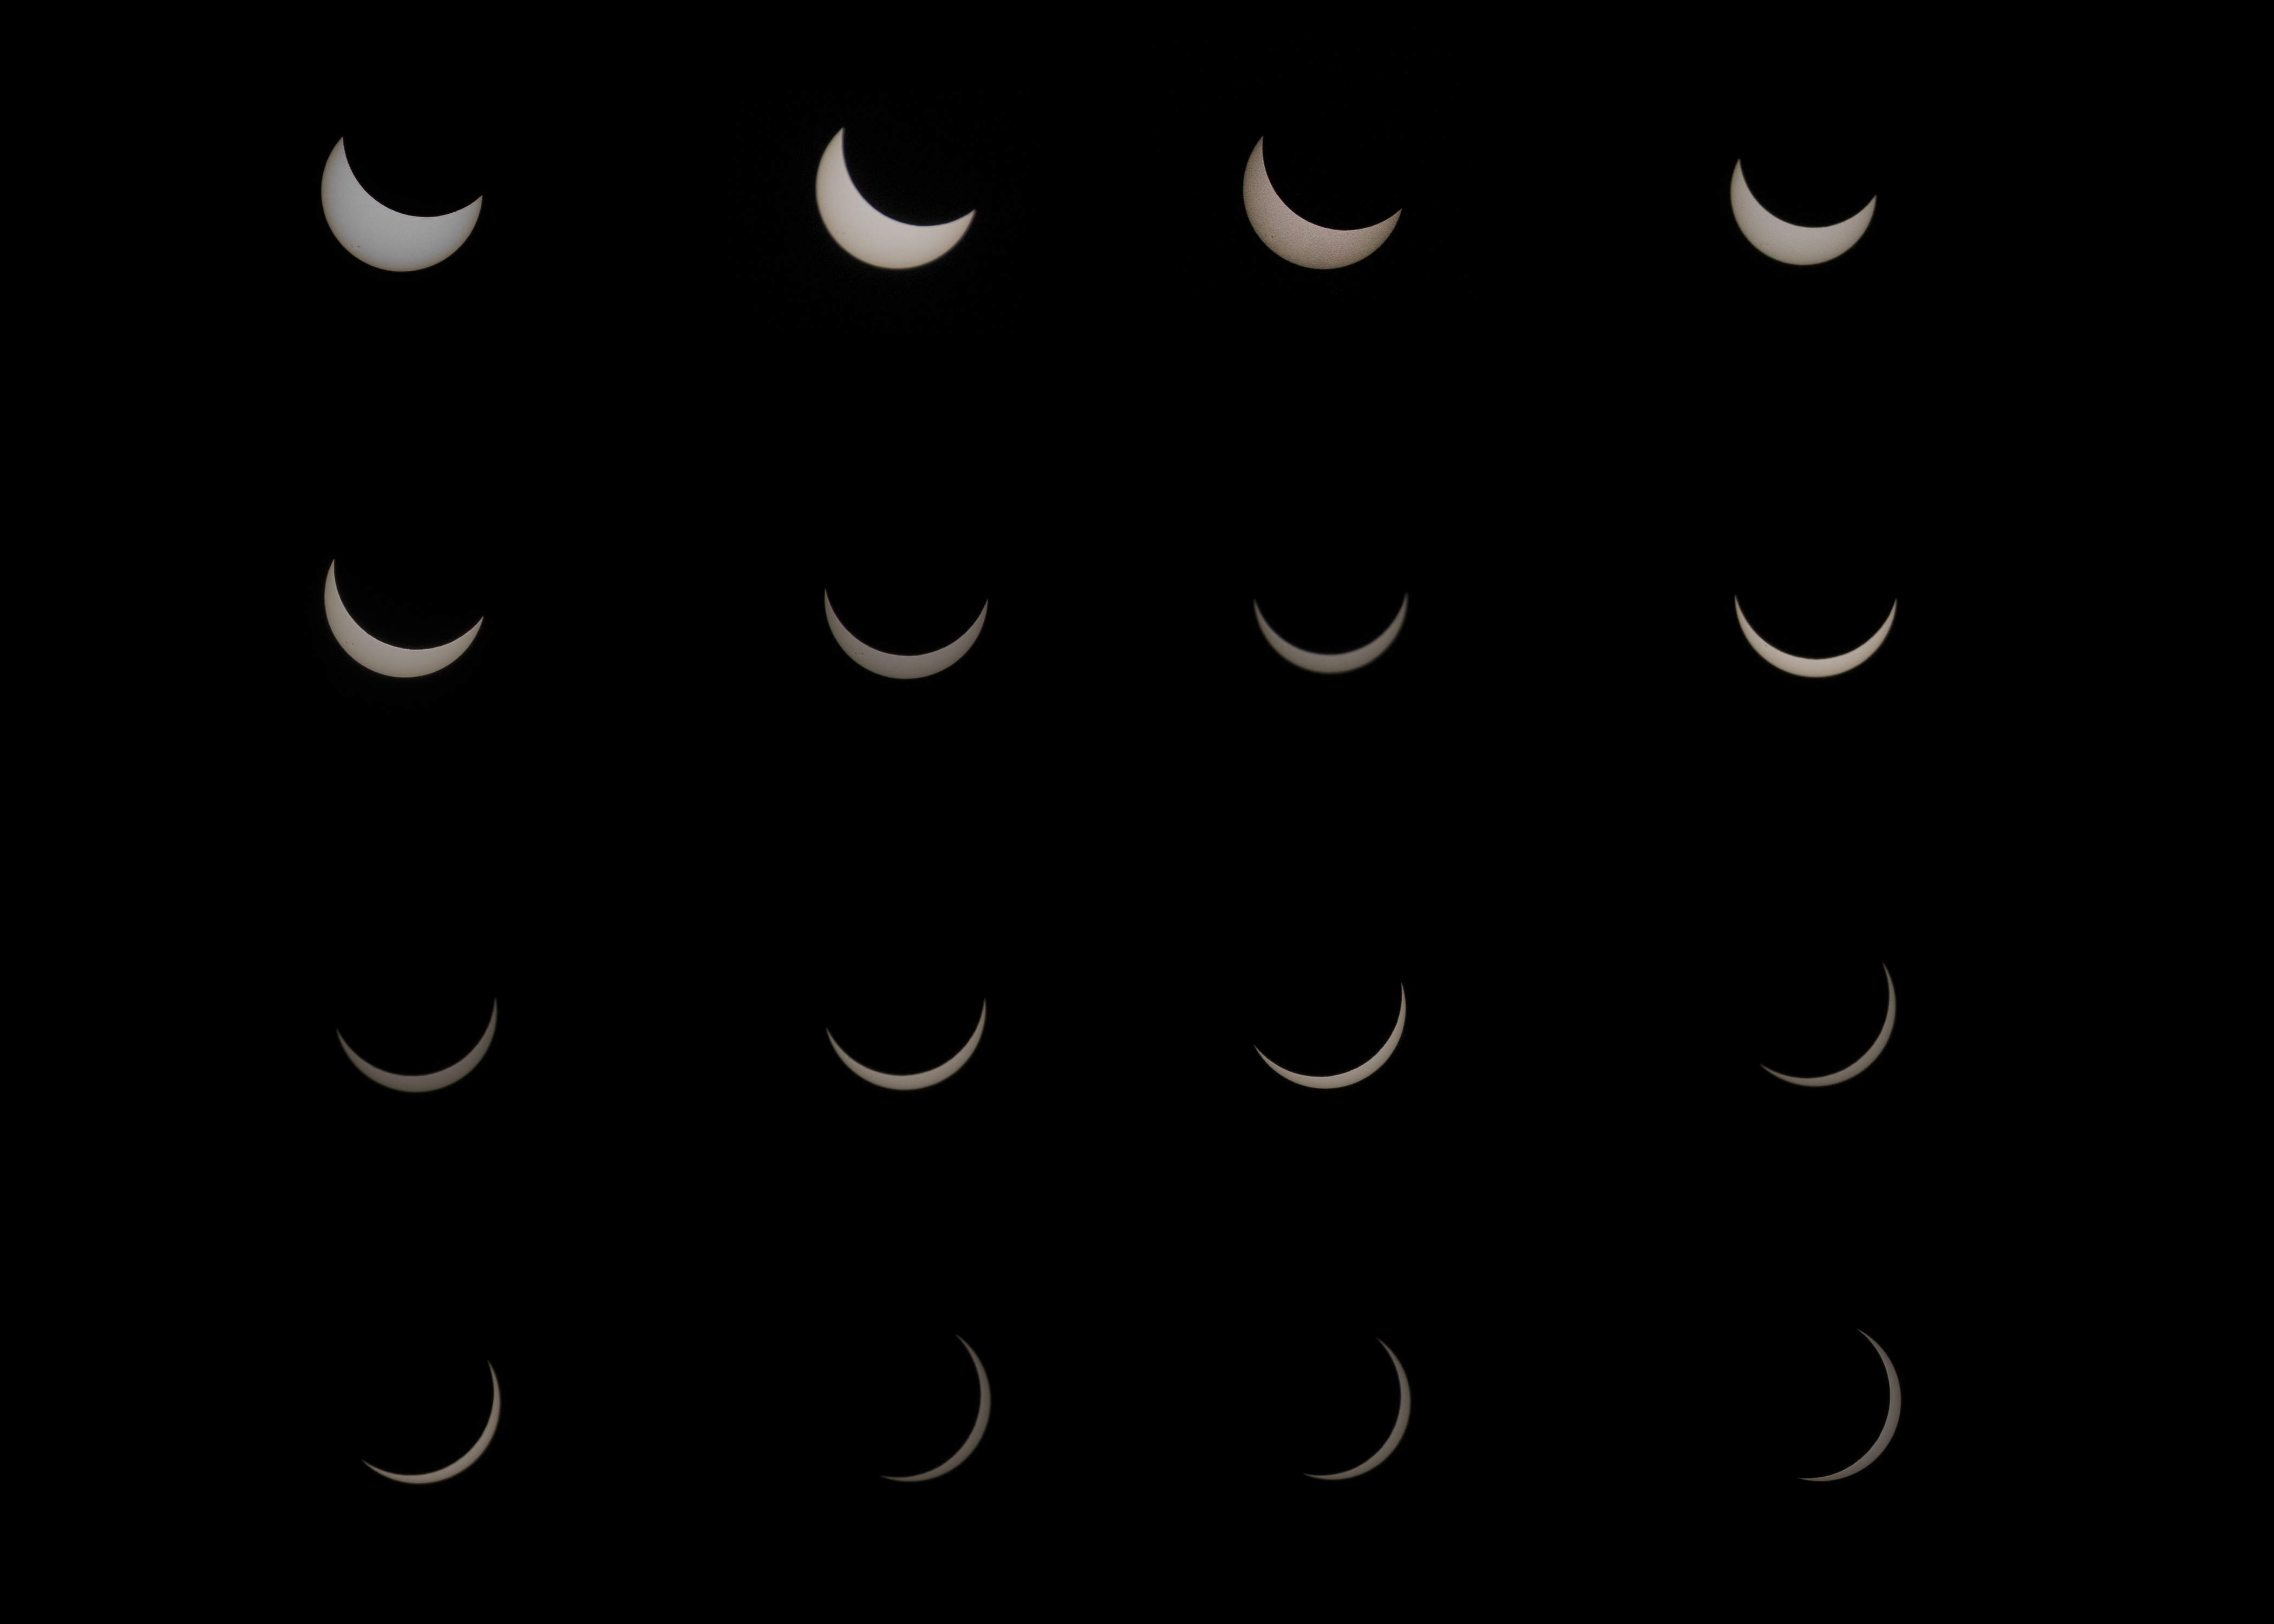 Today's Image of the Day comes thanks to Lee Rannals, who captured these hi-res images of each phase of the Great American Total Solar Eclipse.